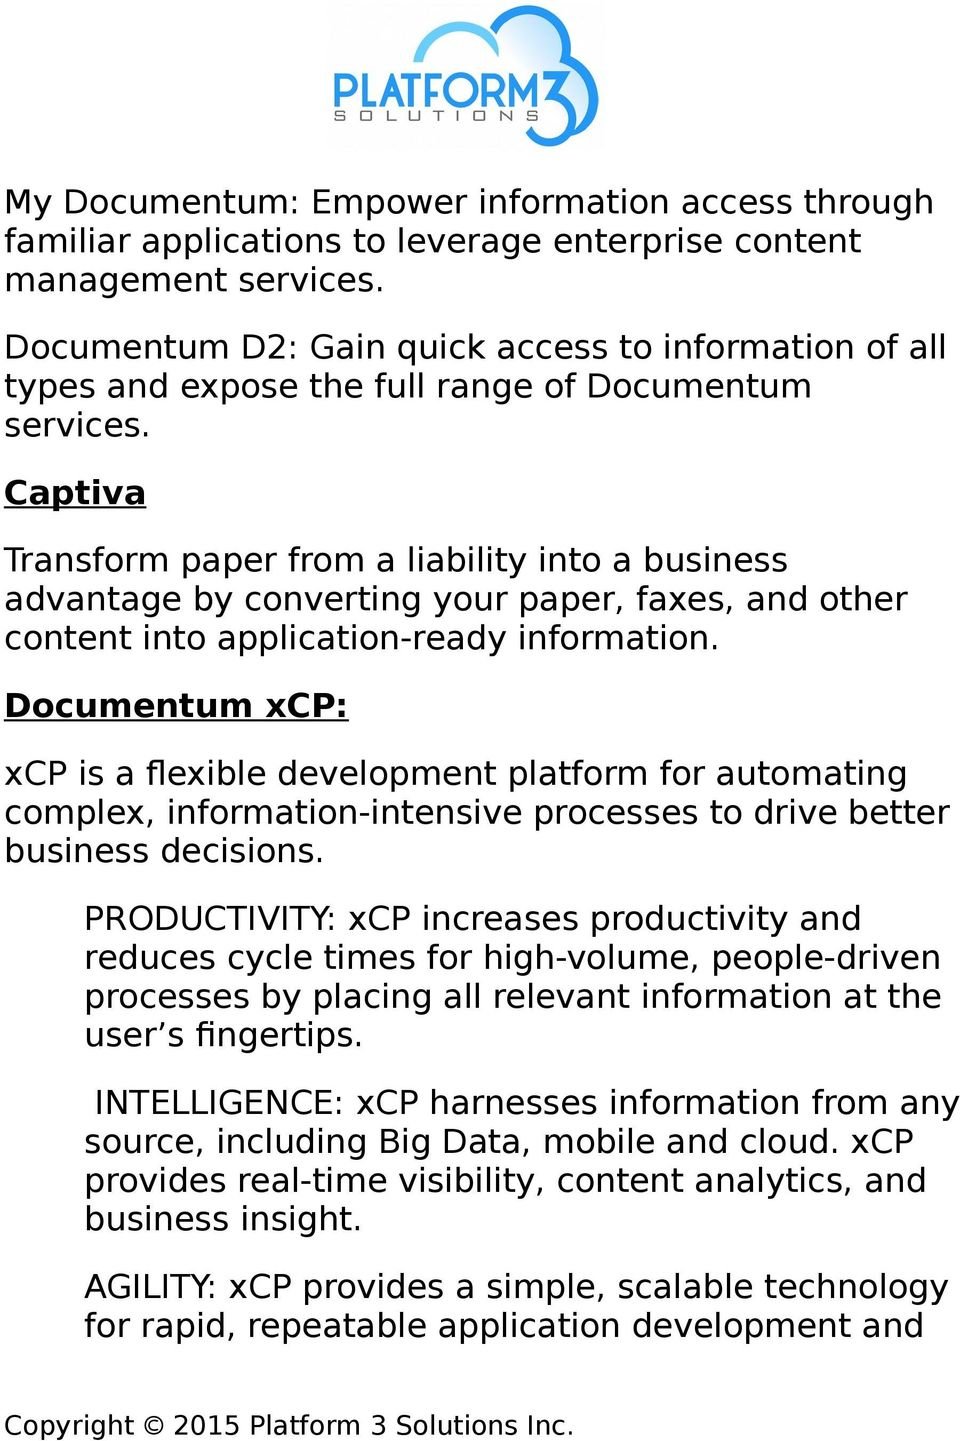 Captiva Transform paper from a liability into a business advantage by converting your paper, faxes, and other content into application-ready information.